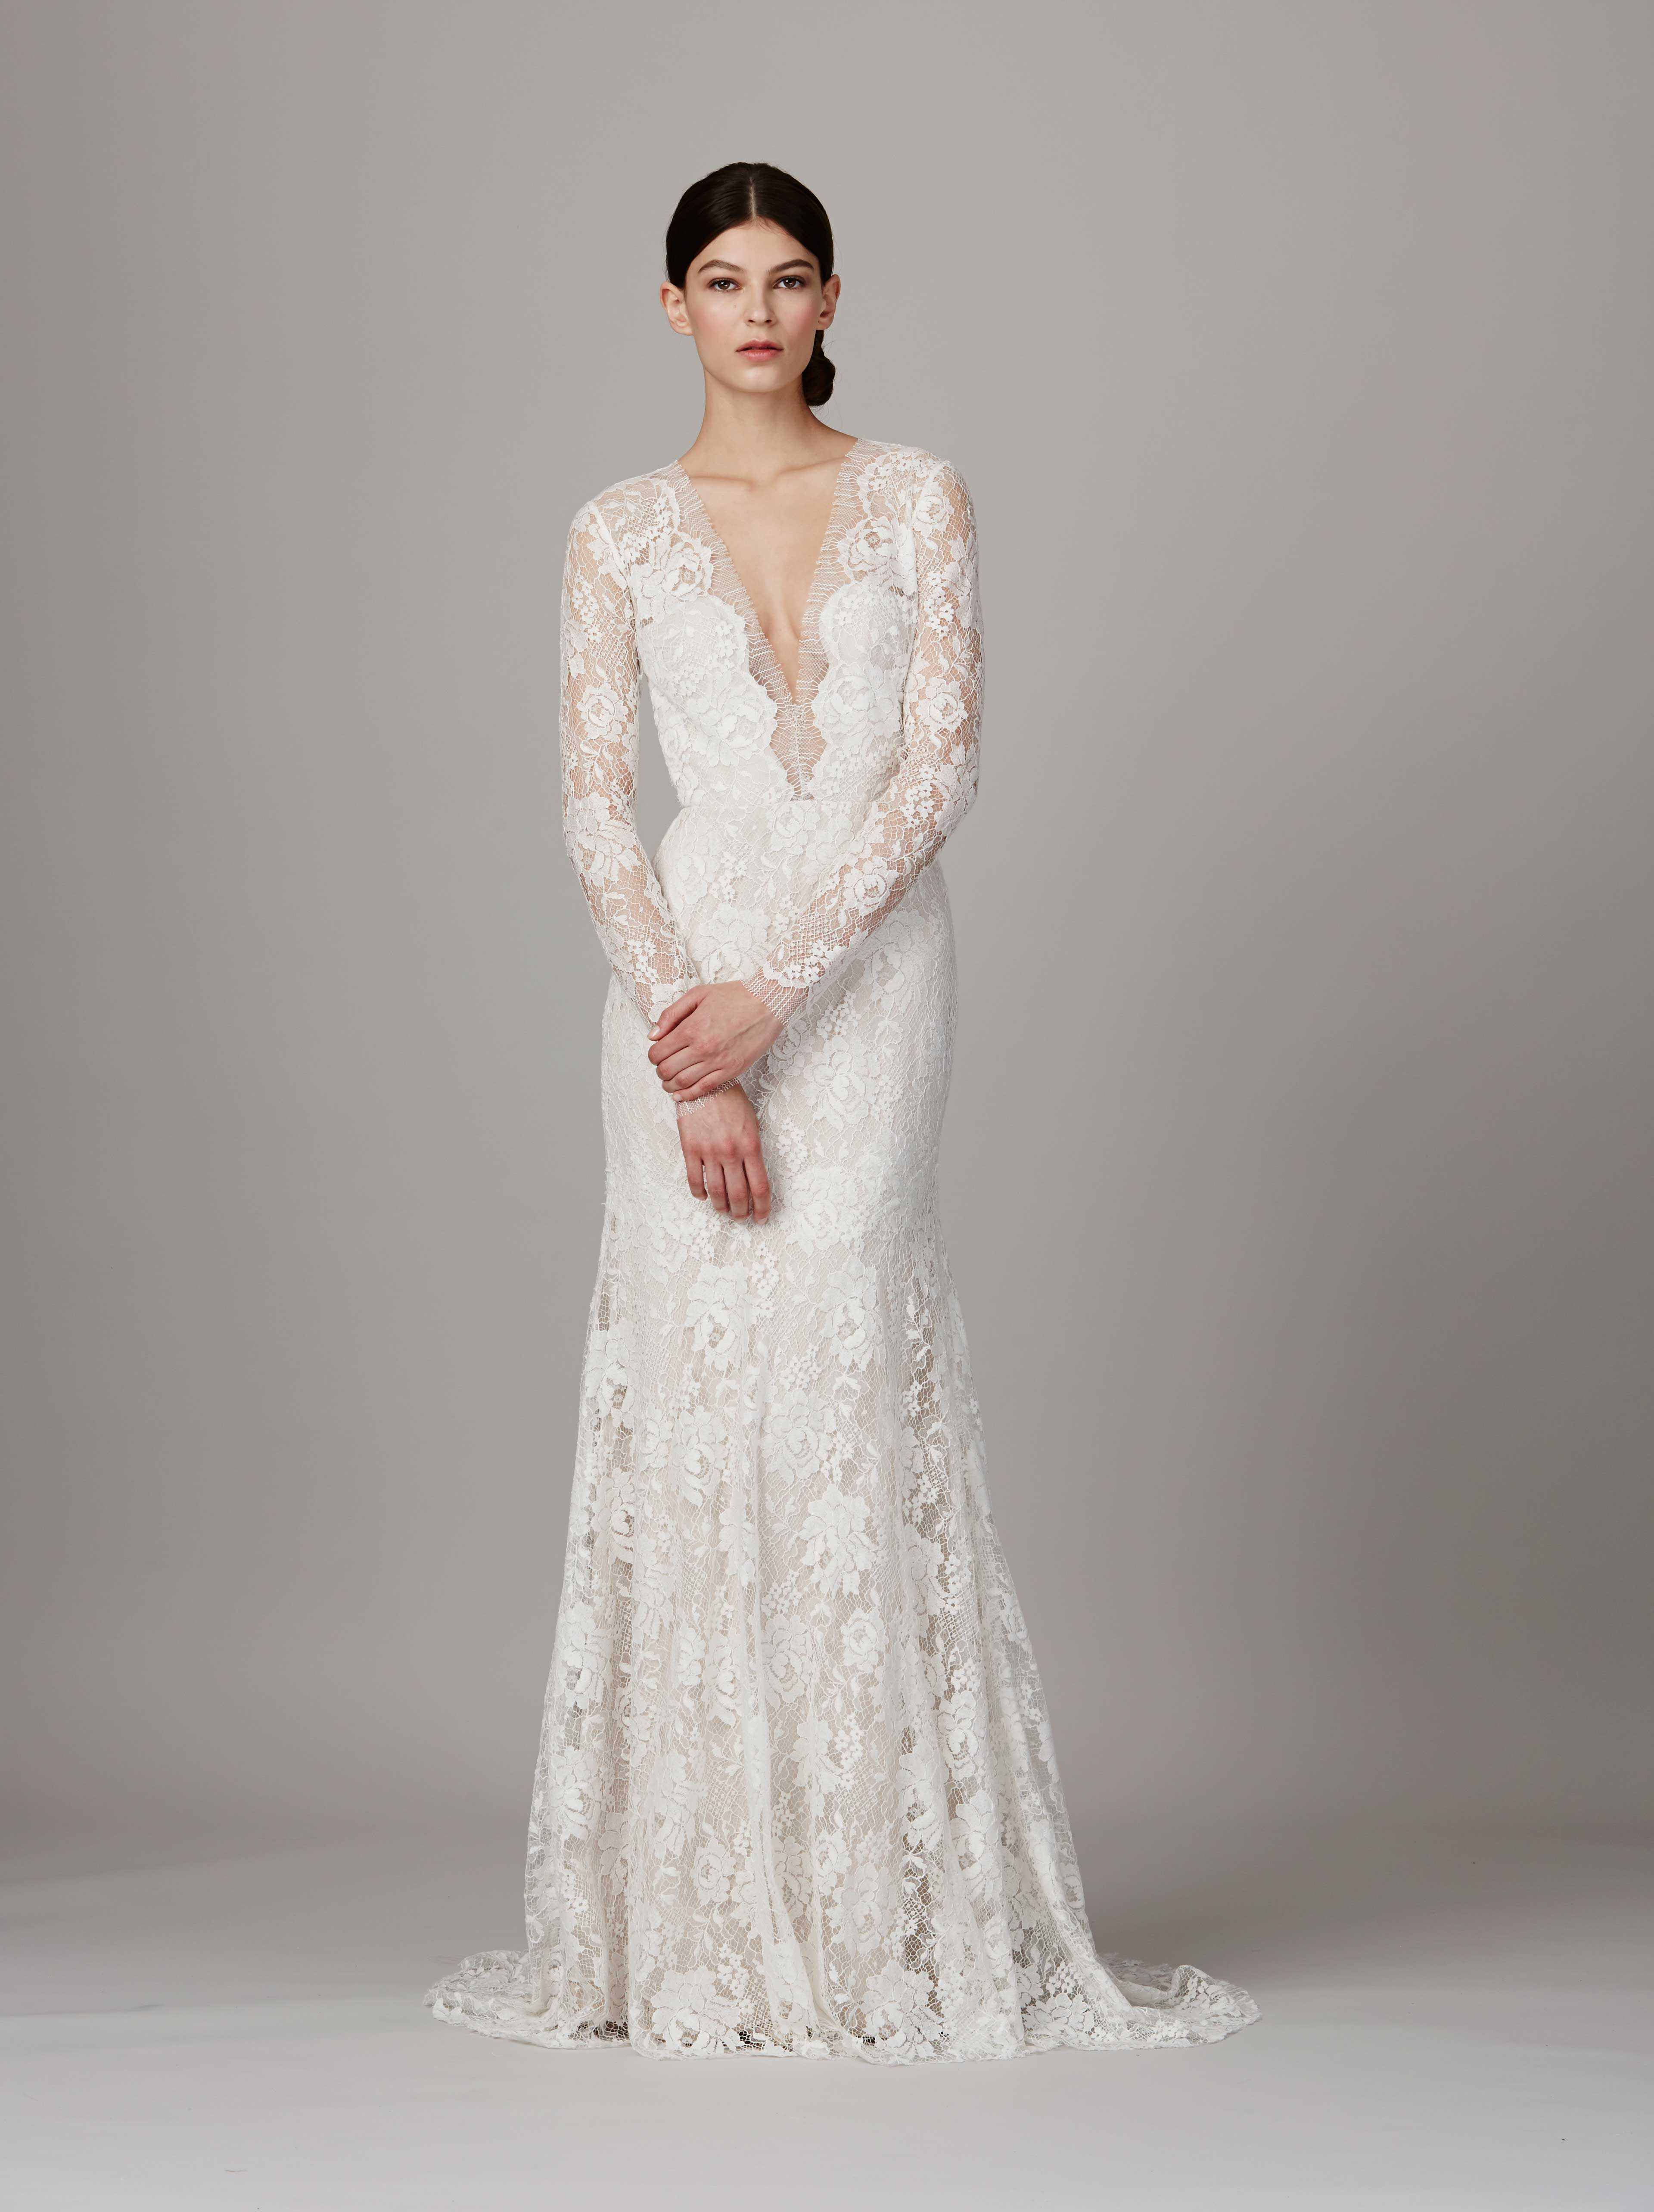 Wedding Dresses With Sexy Elements That Arent Inappropriate